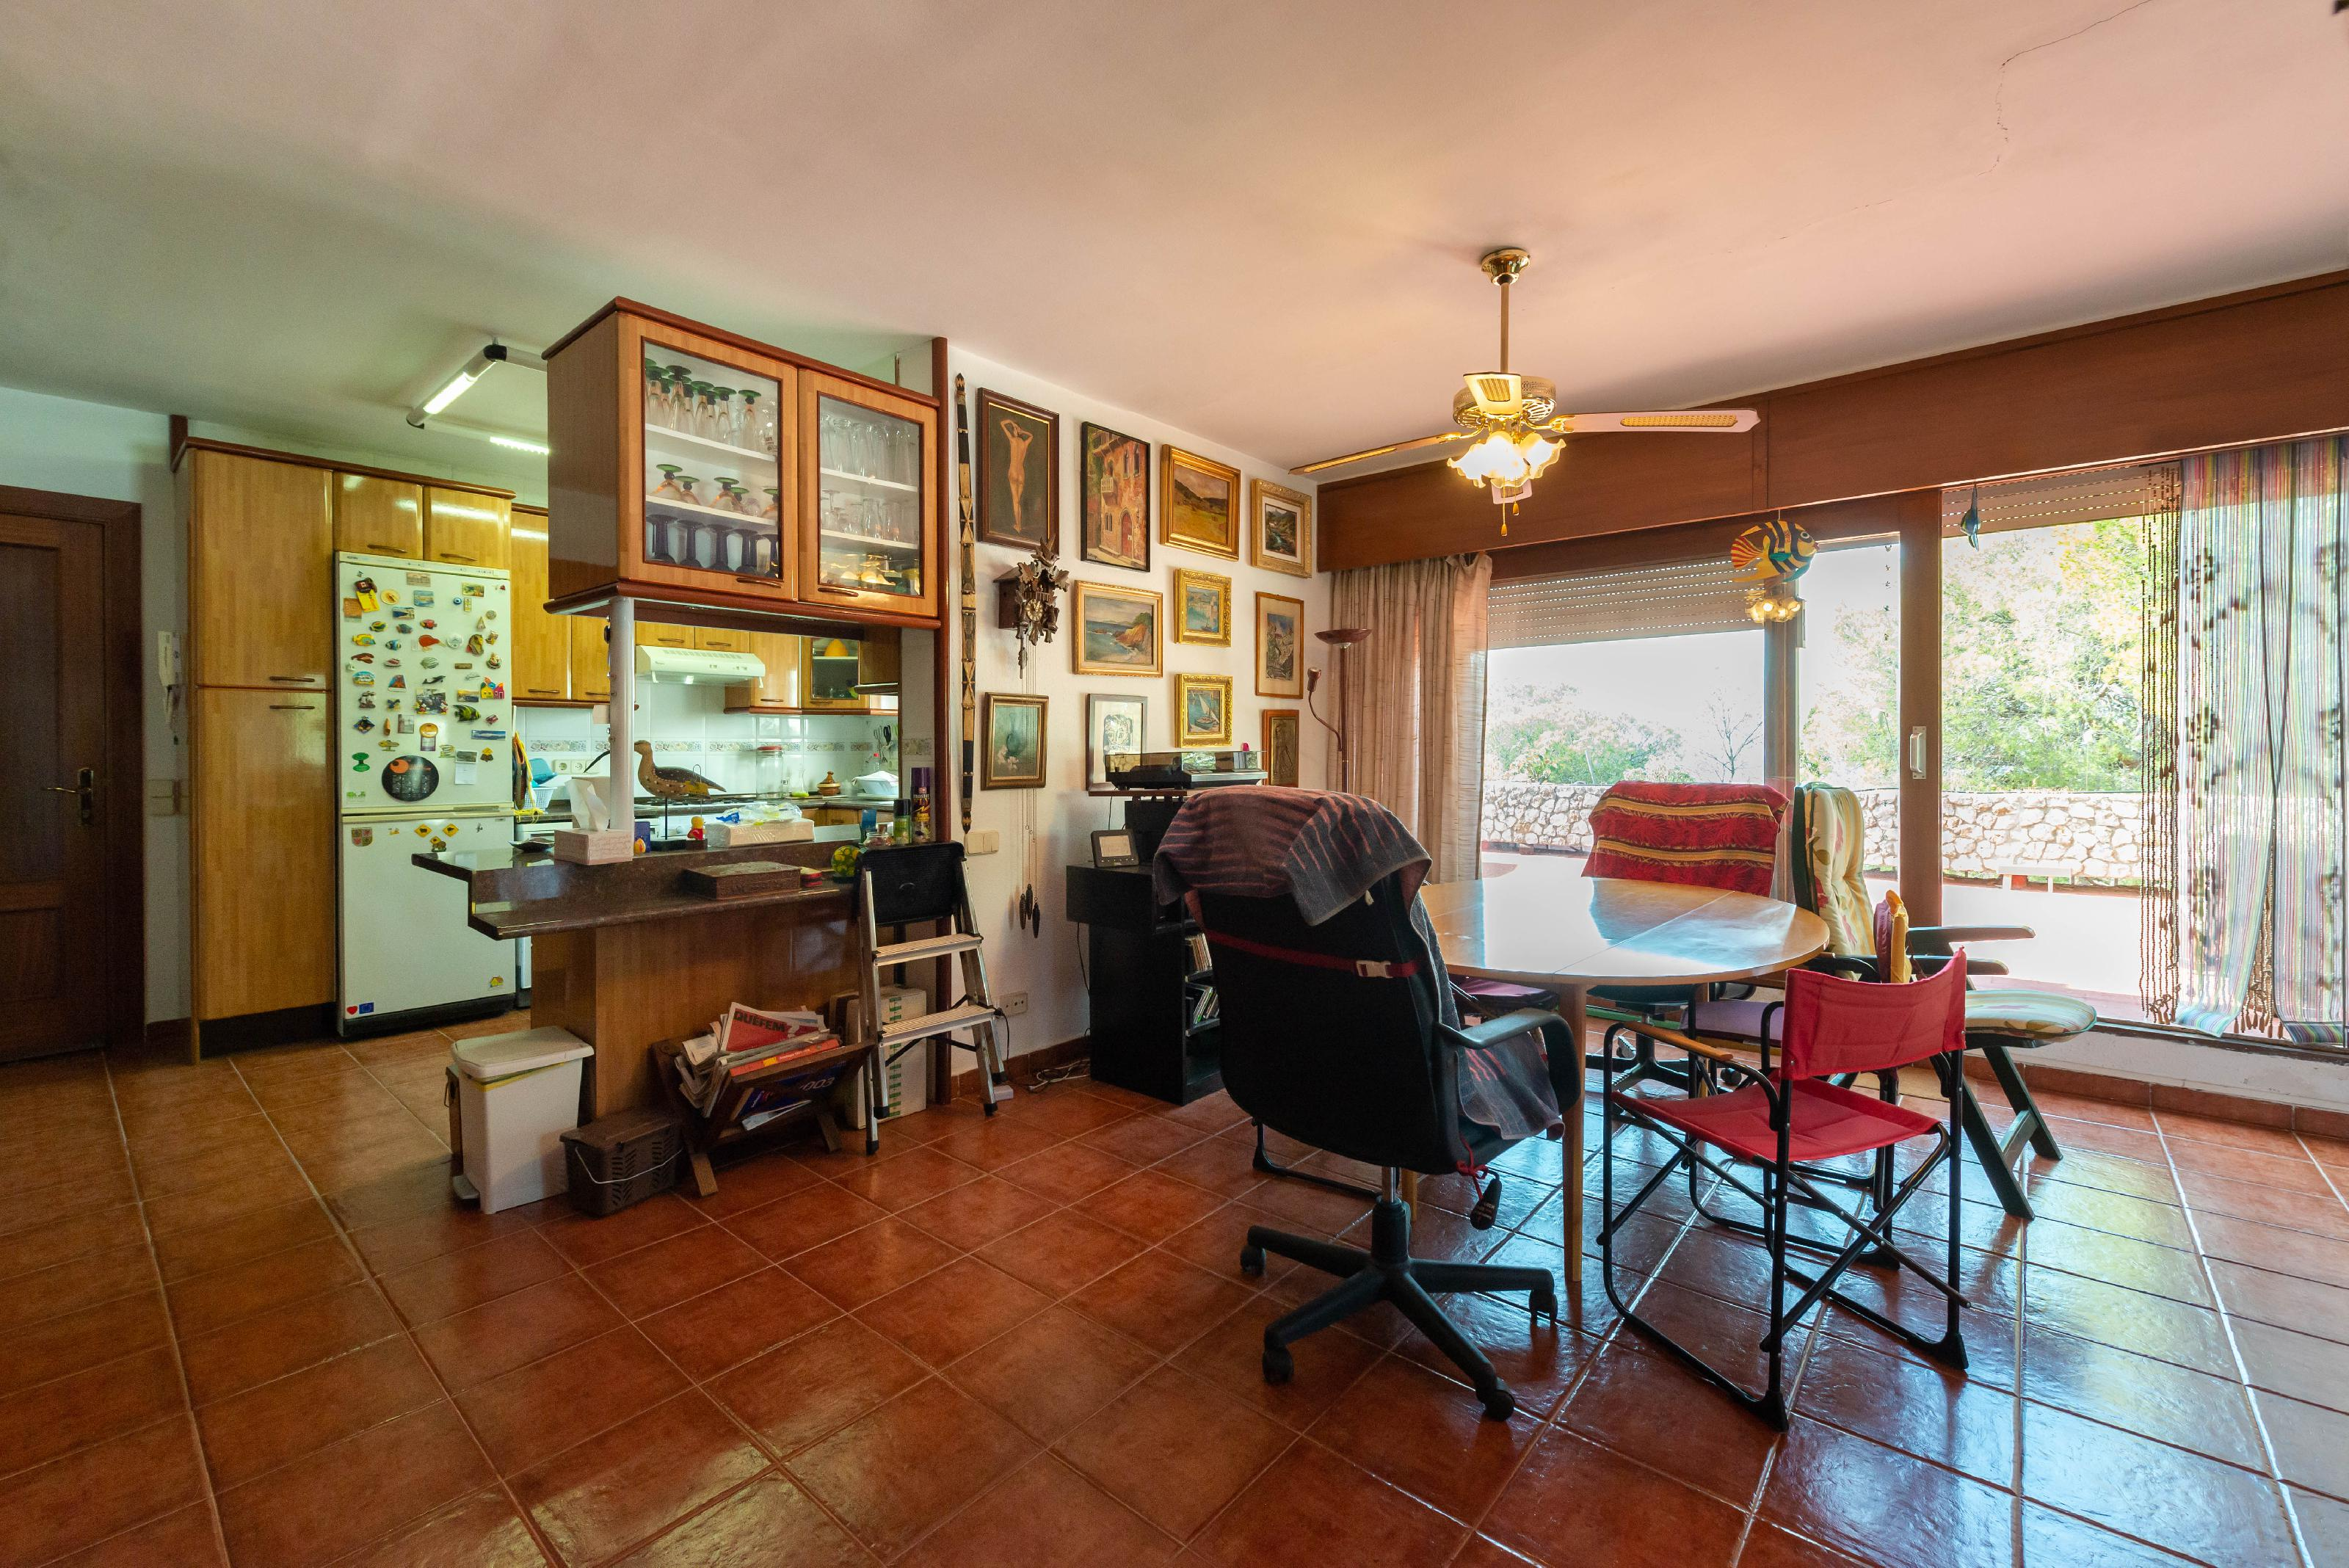 253501 Detached House for sale in Bellamar 33